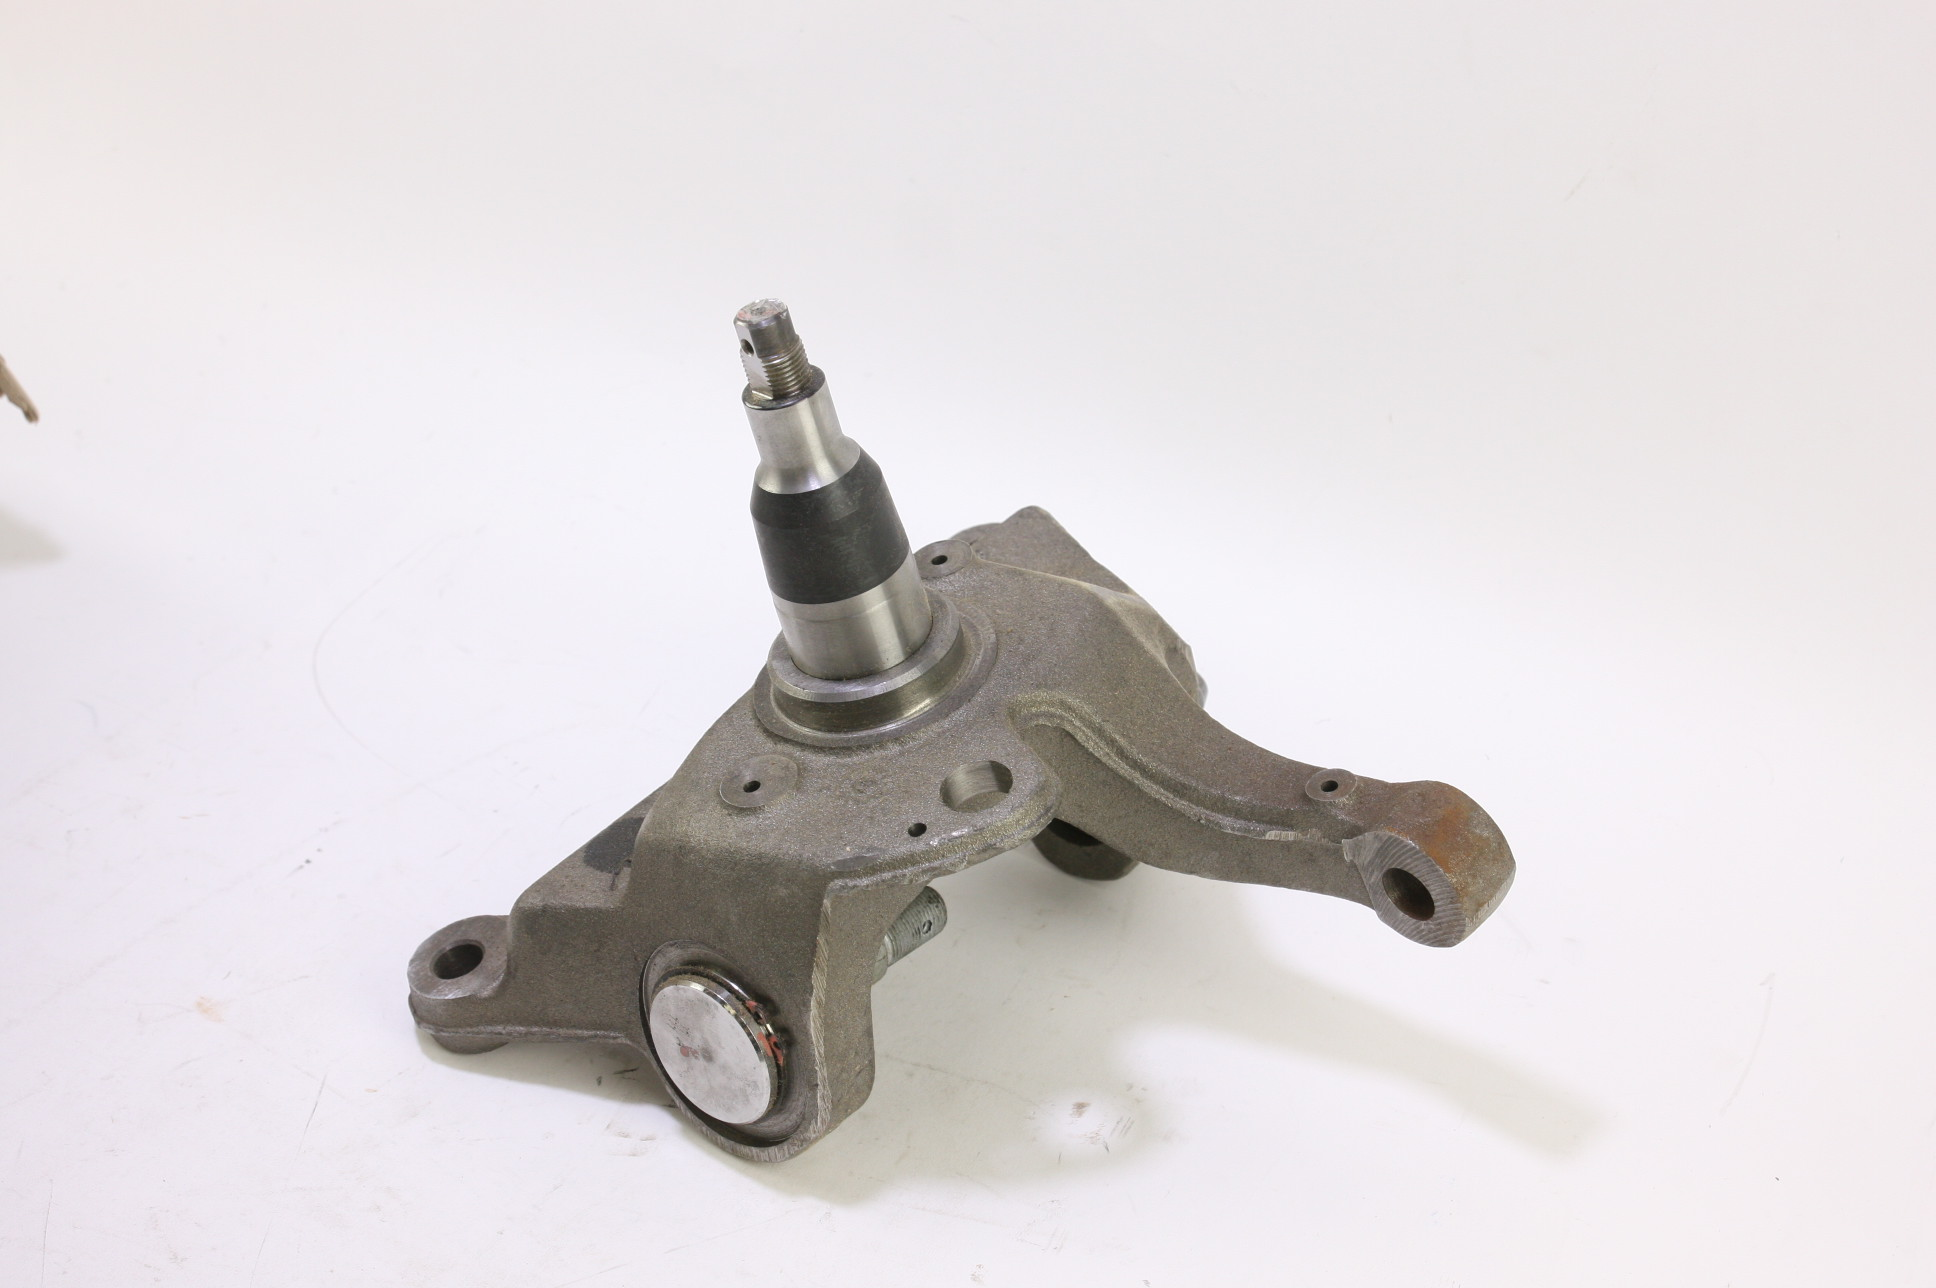 *New OEM F81Z3105BA Ford Front Suspension Steering Knuckle Spindle Free Shipping - image 1